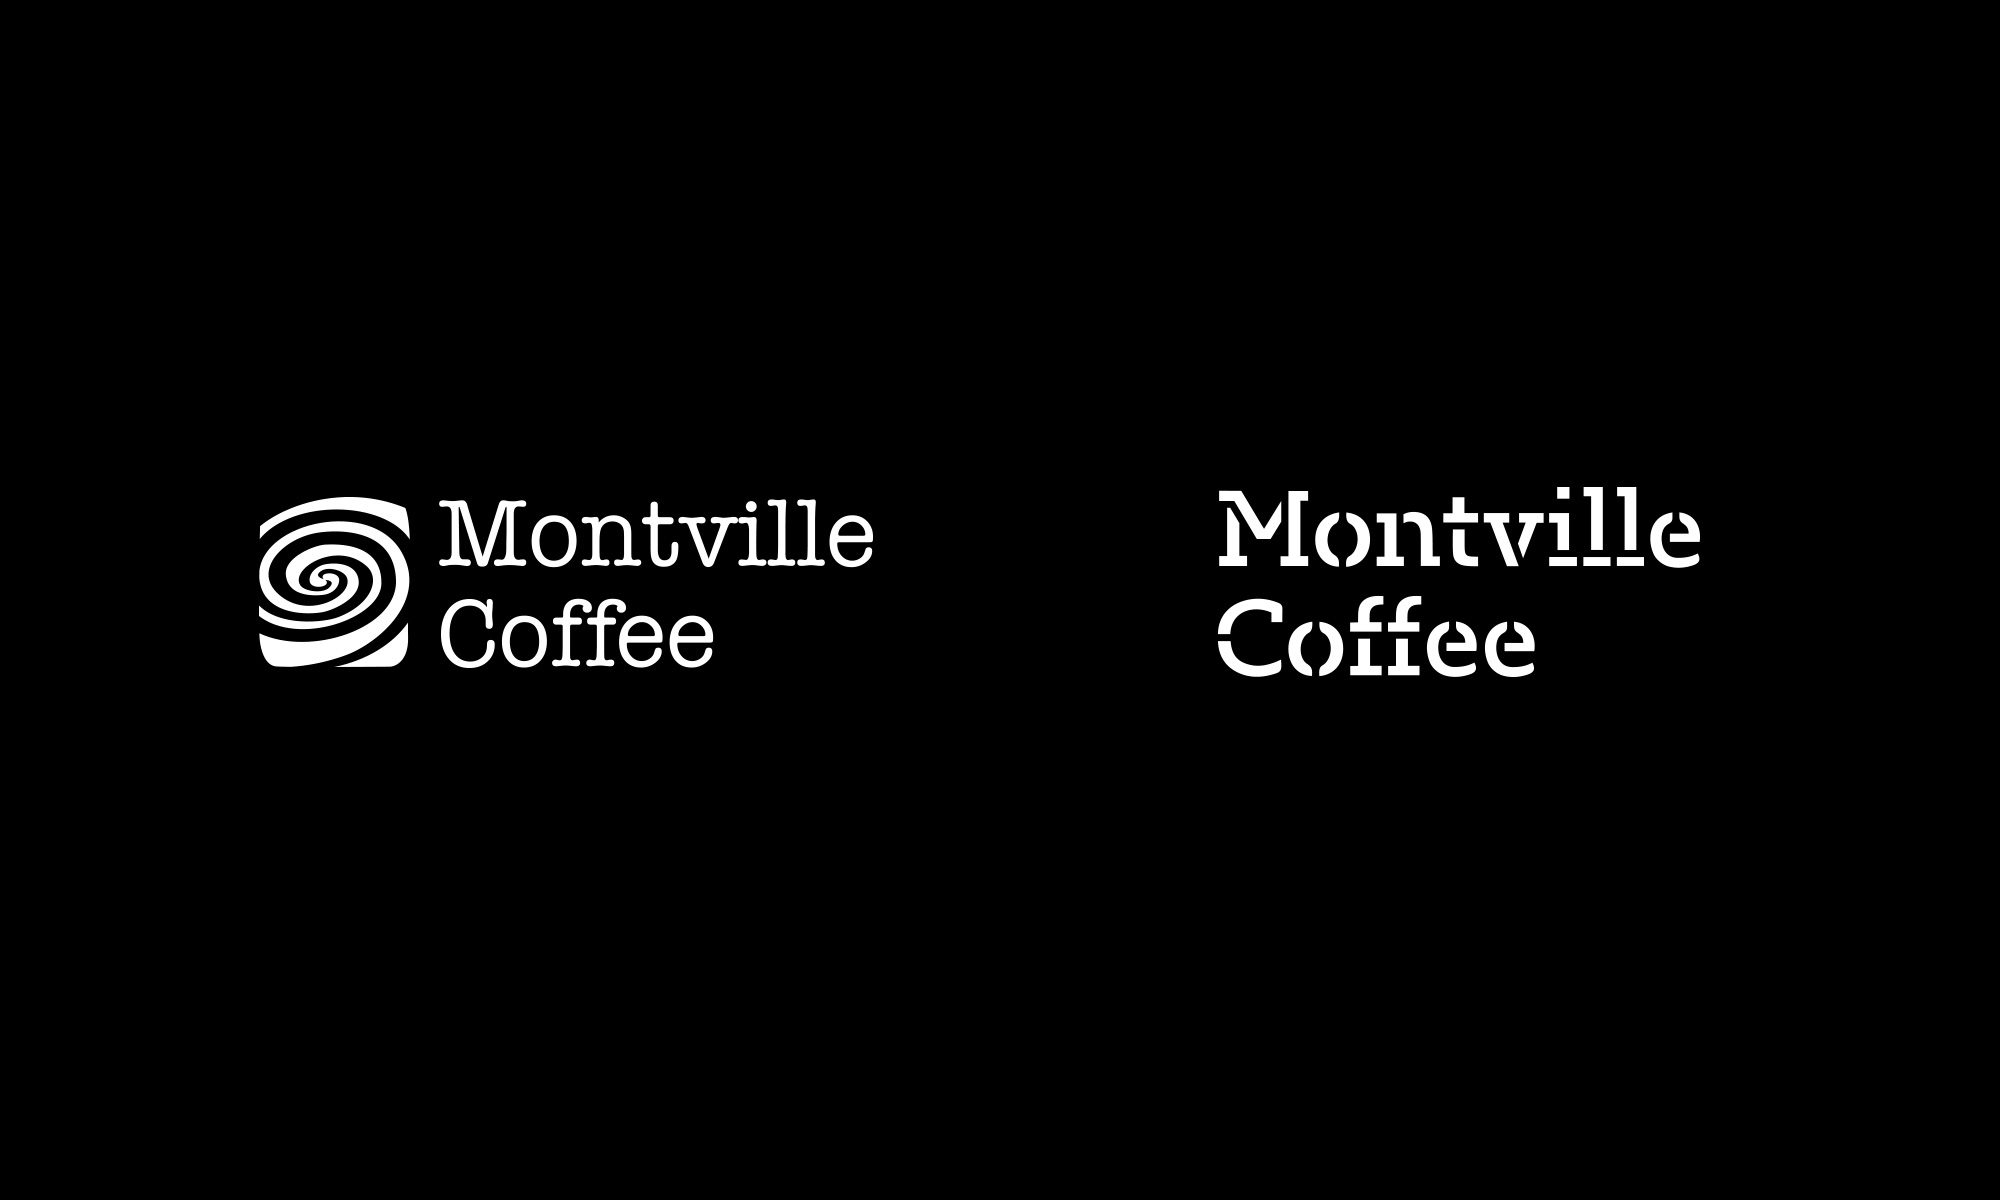 Montville Coffee logo evolution